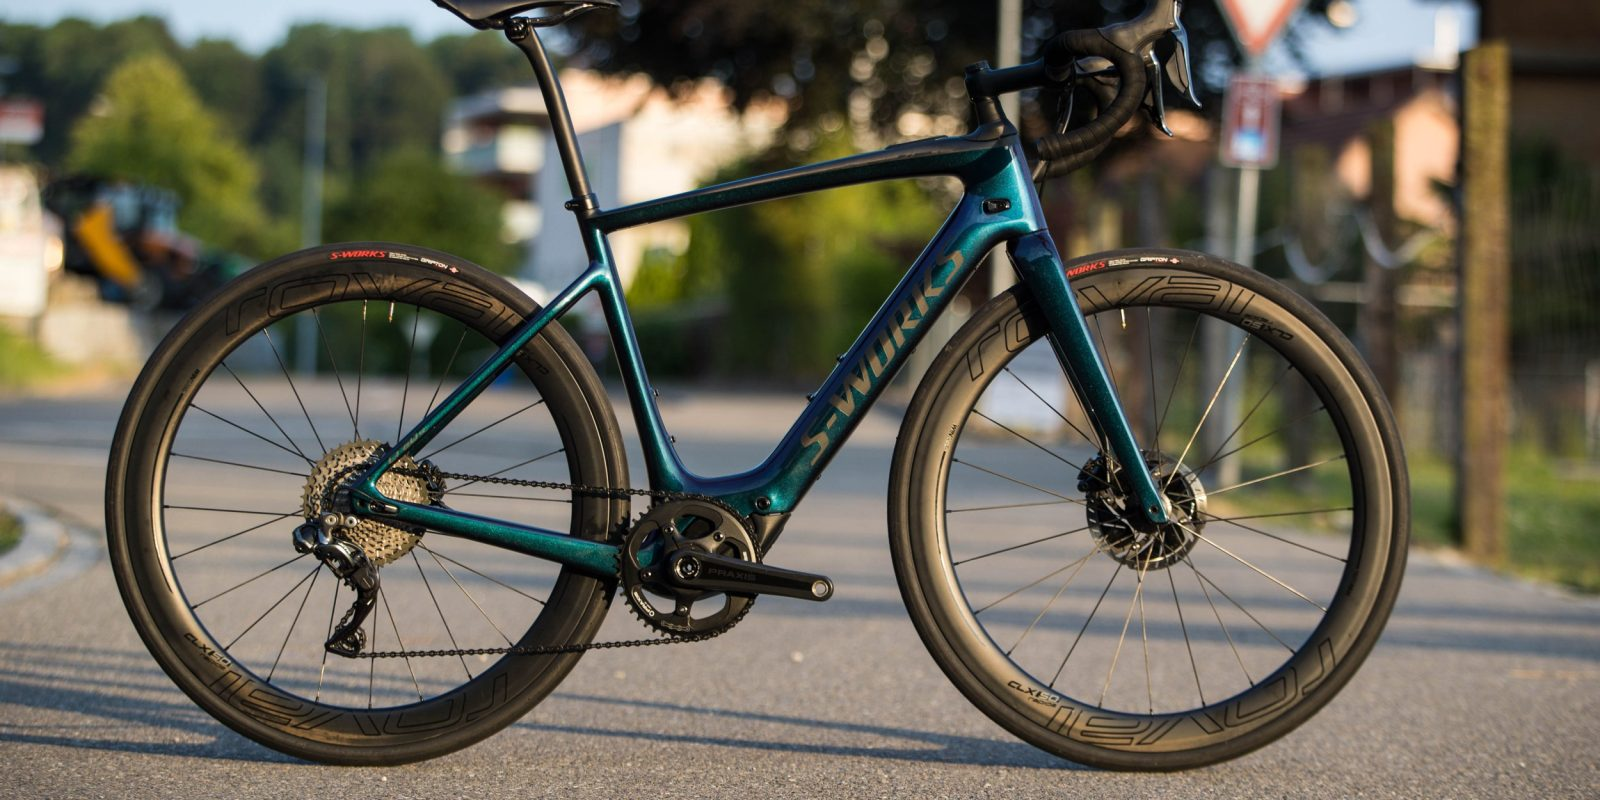 Here's why Specialized's new 120 mi range electric bicycle